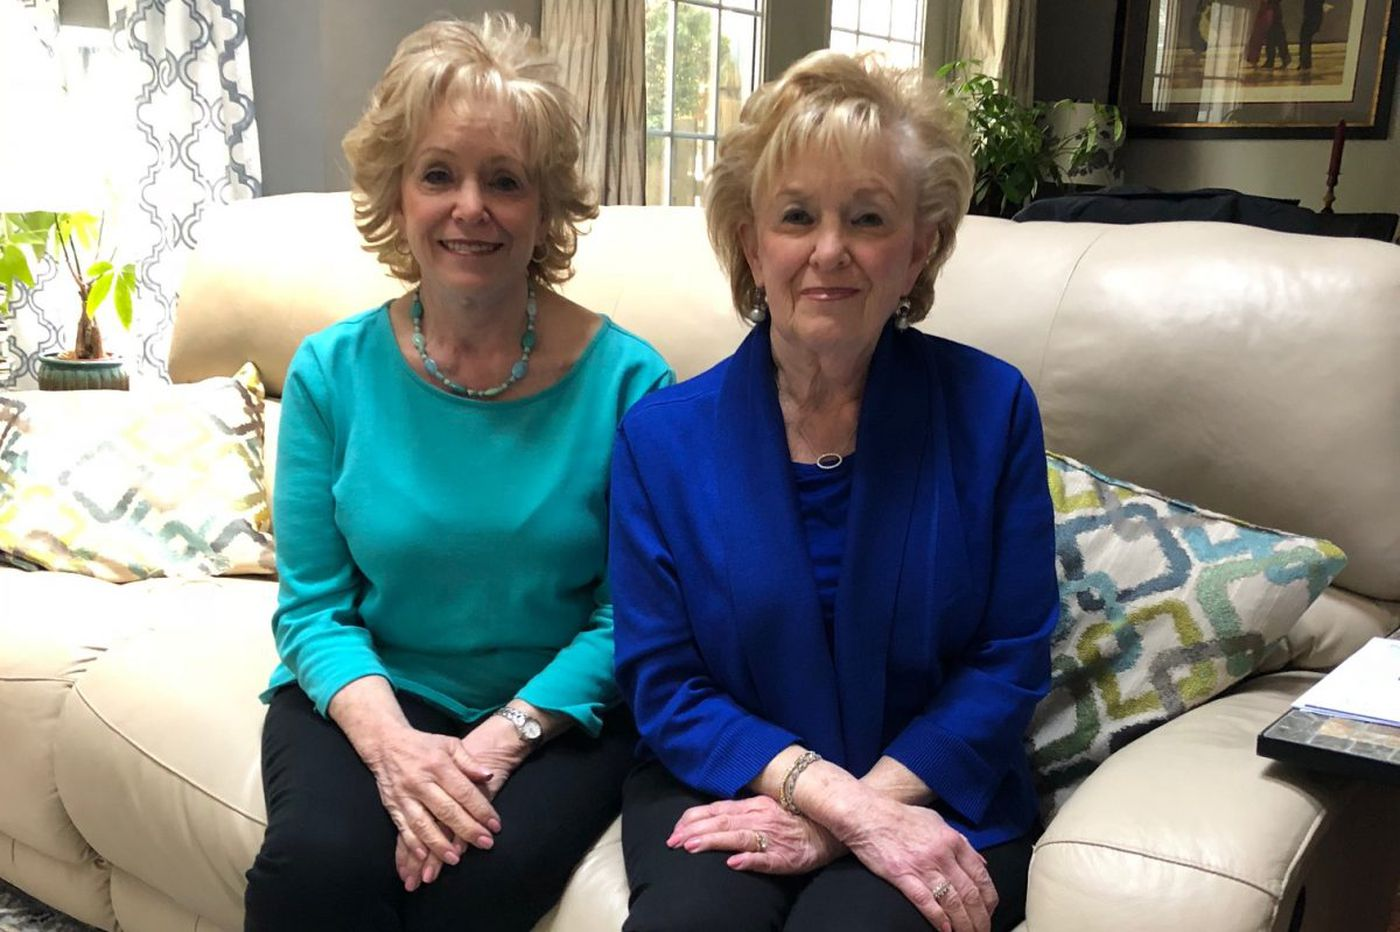 Her identical twin saved her life 25 years ago. Now they're cancer activists